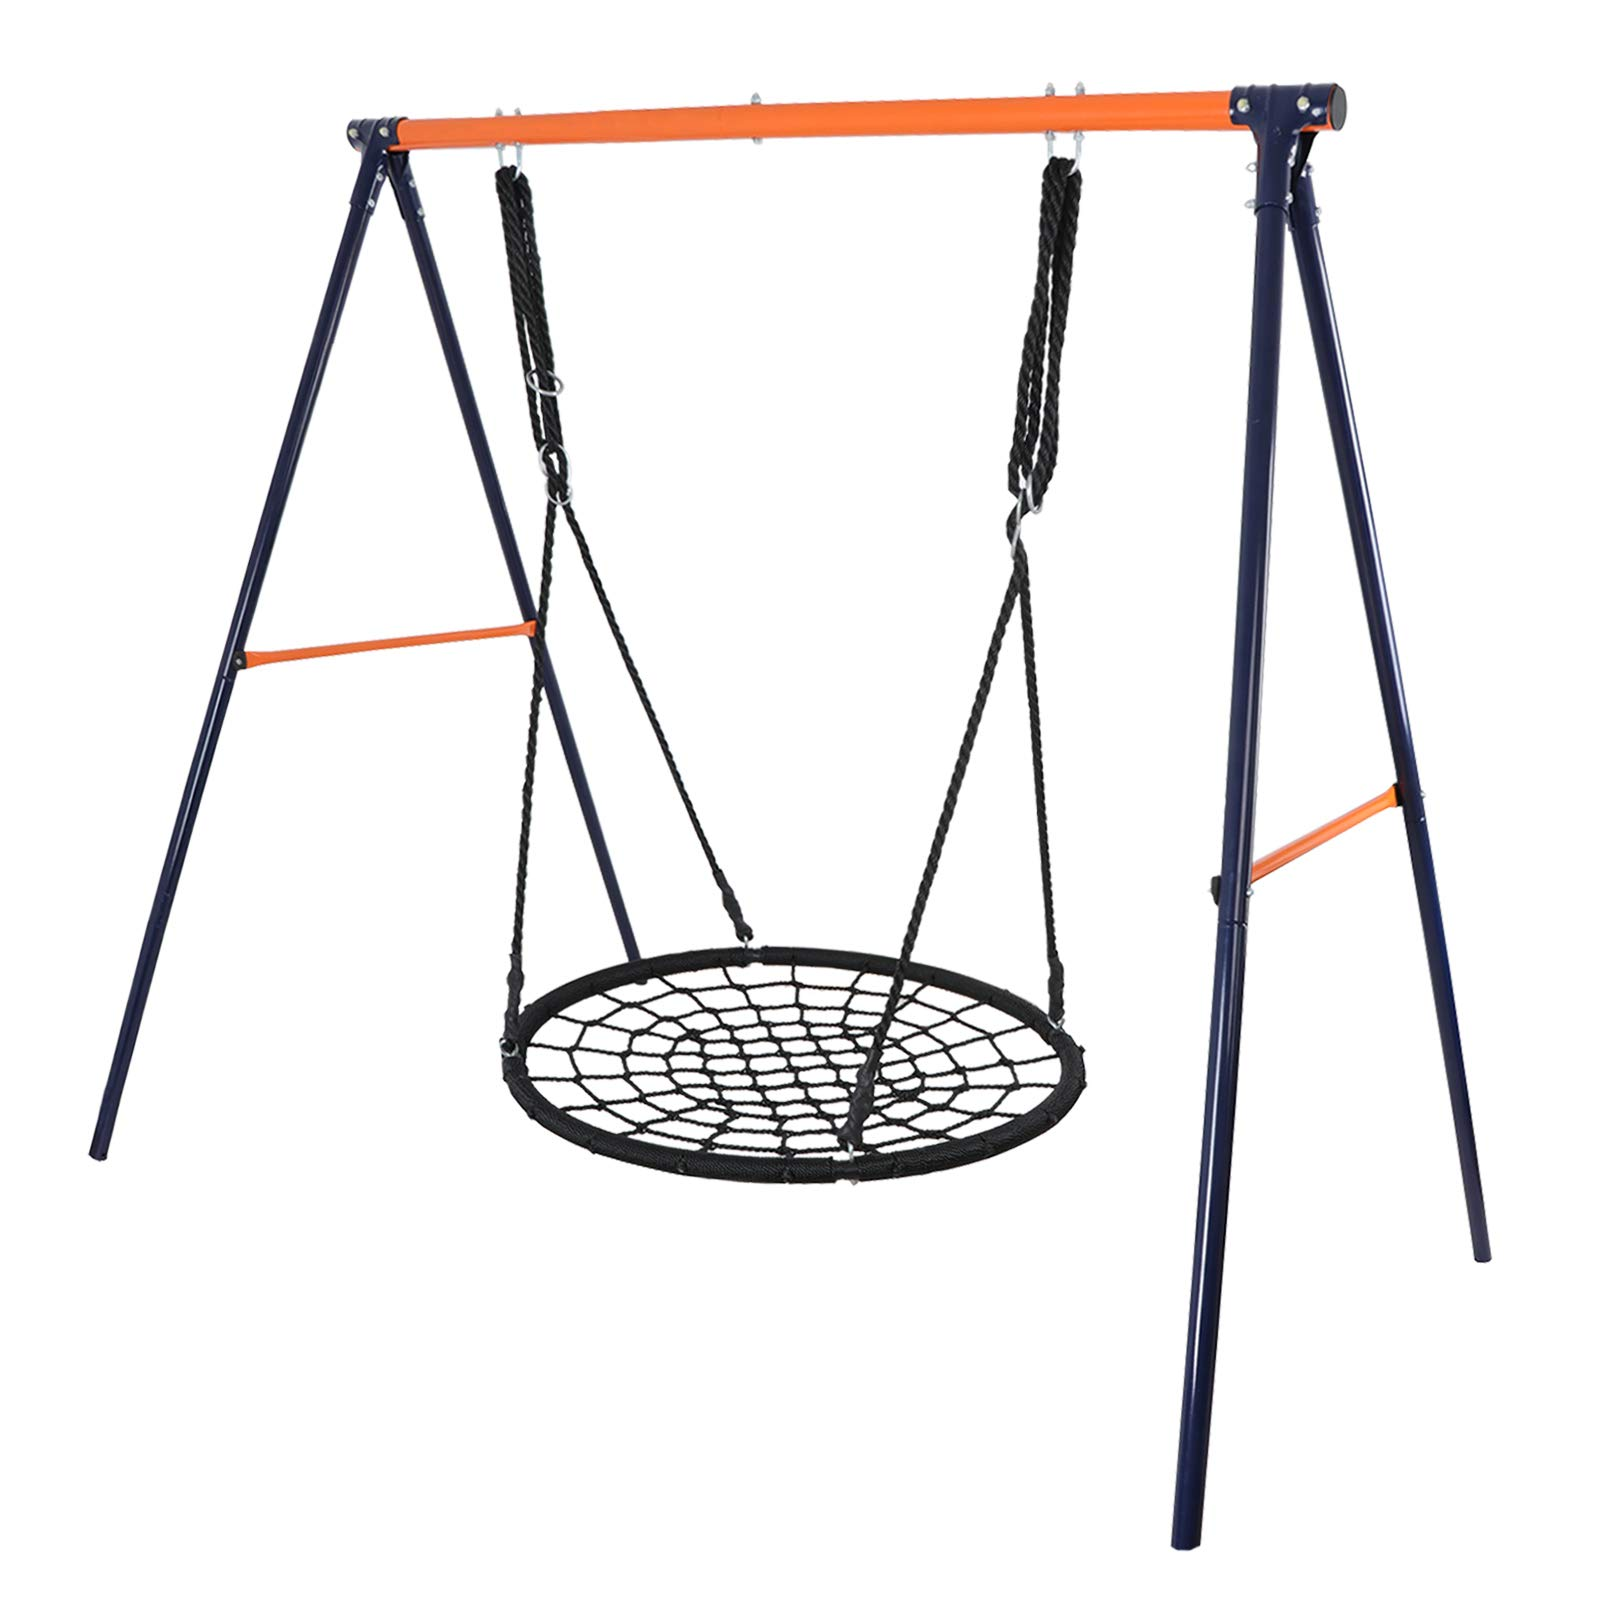 ZENY Swing Set - 24'' Spinner Web Tree Swing Nylon Rope + All Weather Steel A Swing Frame Stand,Great for Backyard Kids Play Fun by ZENY (Image #1)